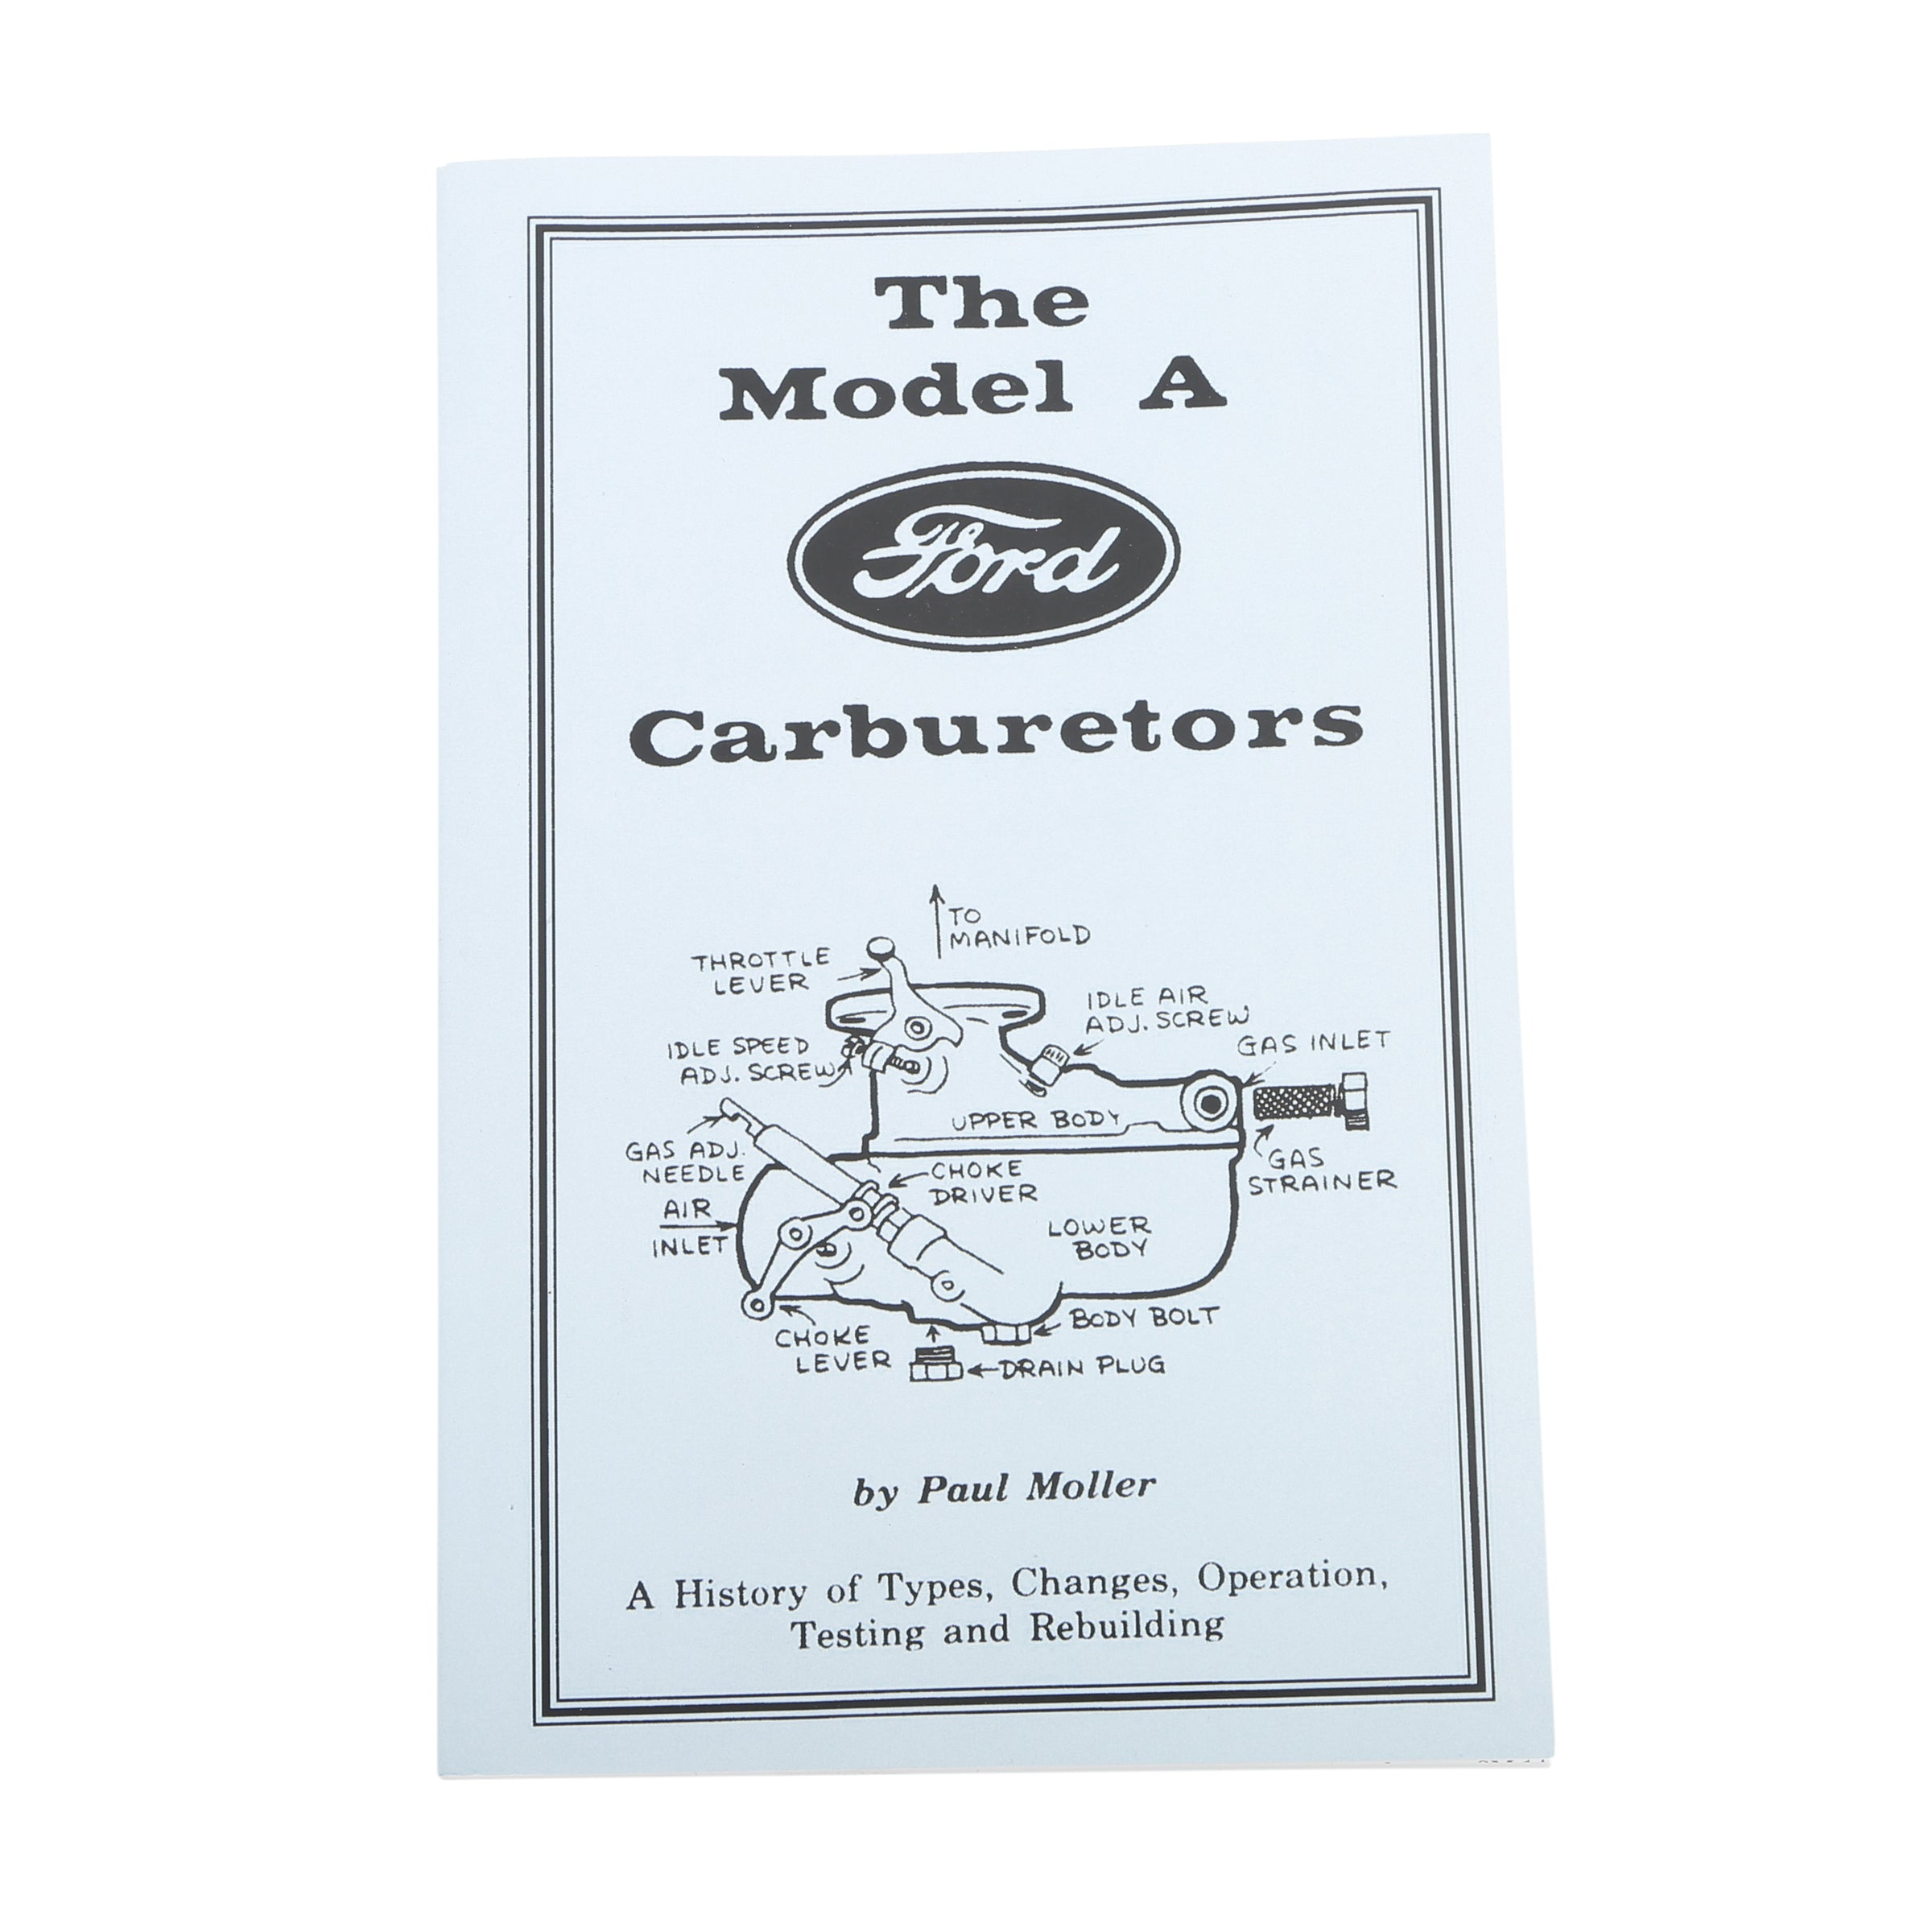 Model A FORD Carburetors • 1928-31 Zenith